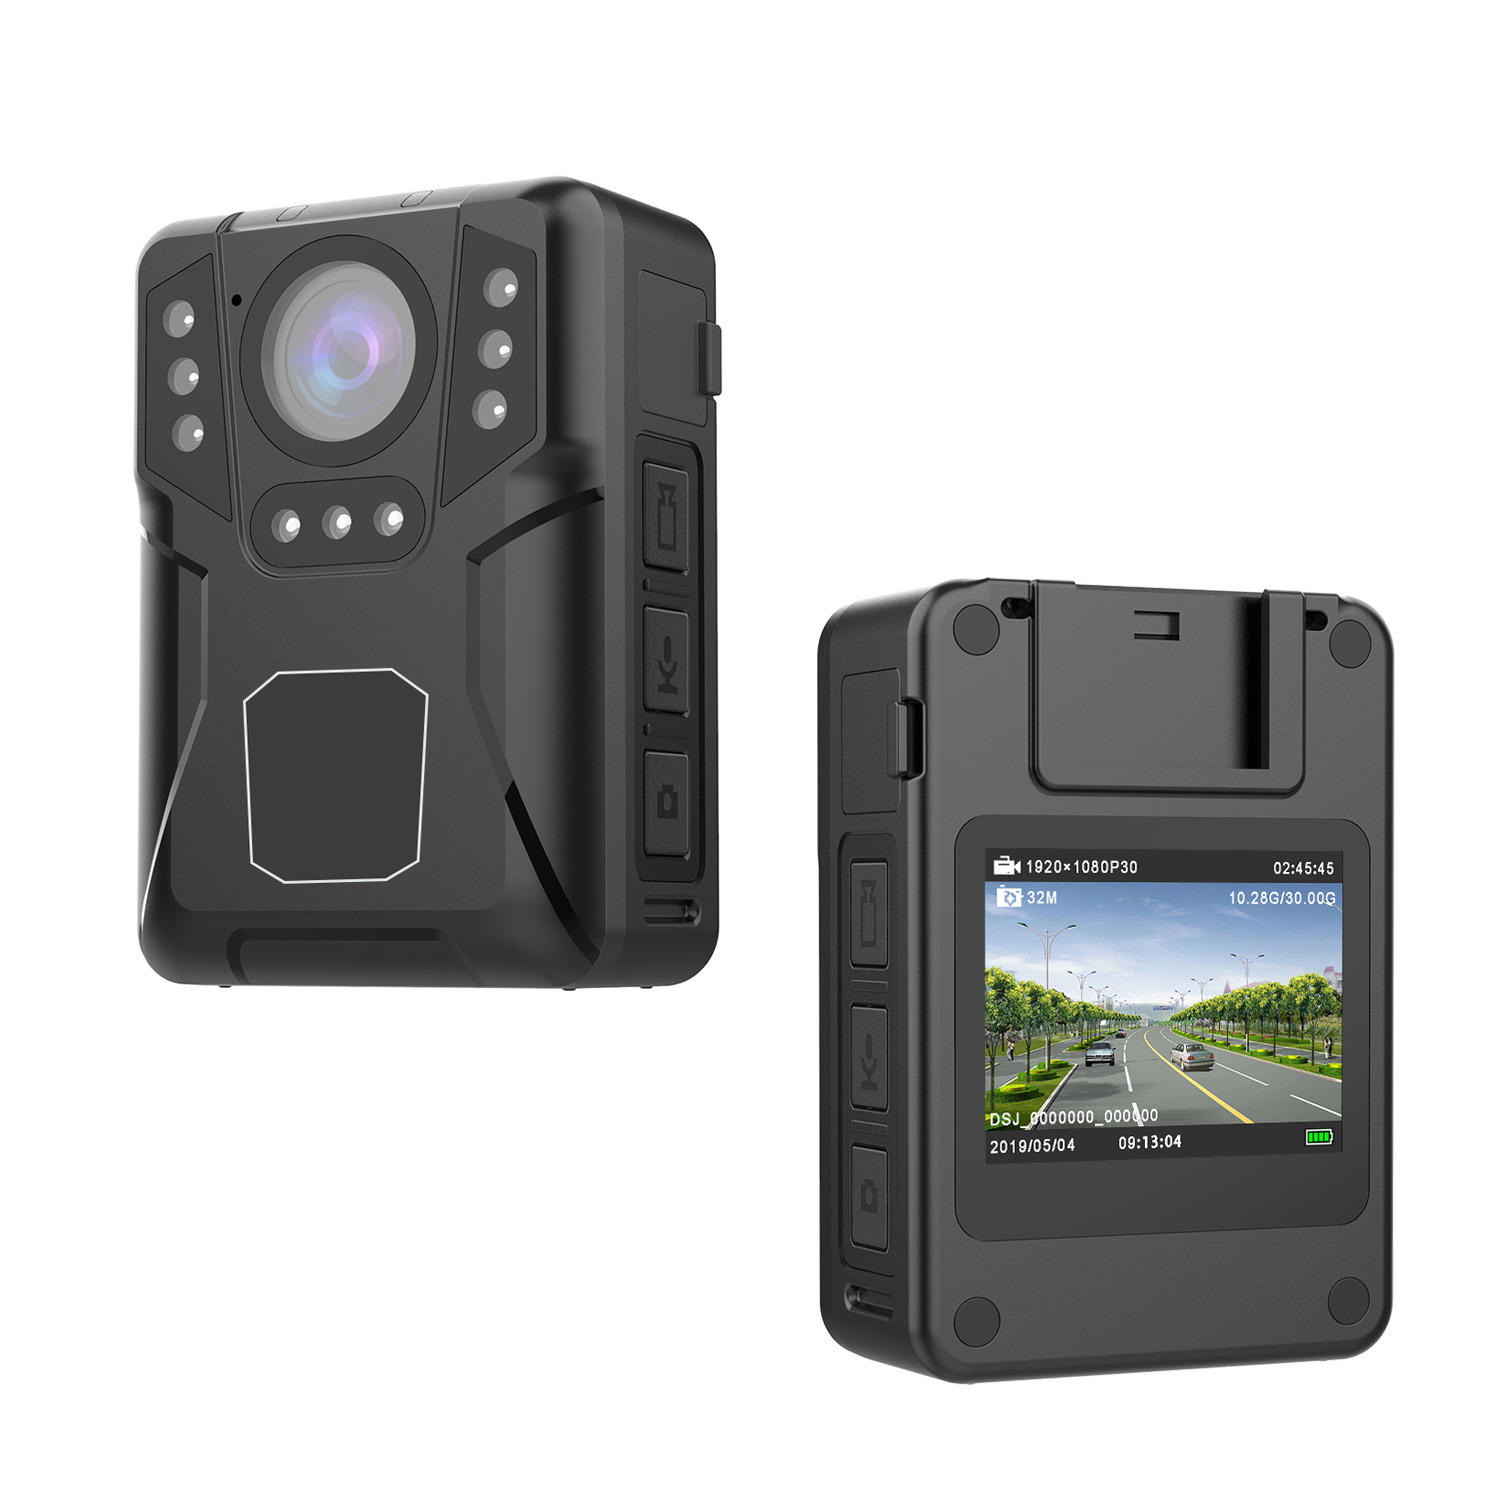 Cammpro 1440P ir auto switching body temp camera motion detection loop recording video body worn camera